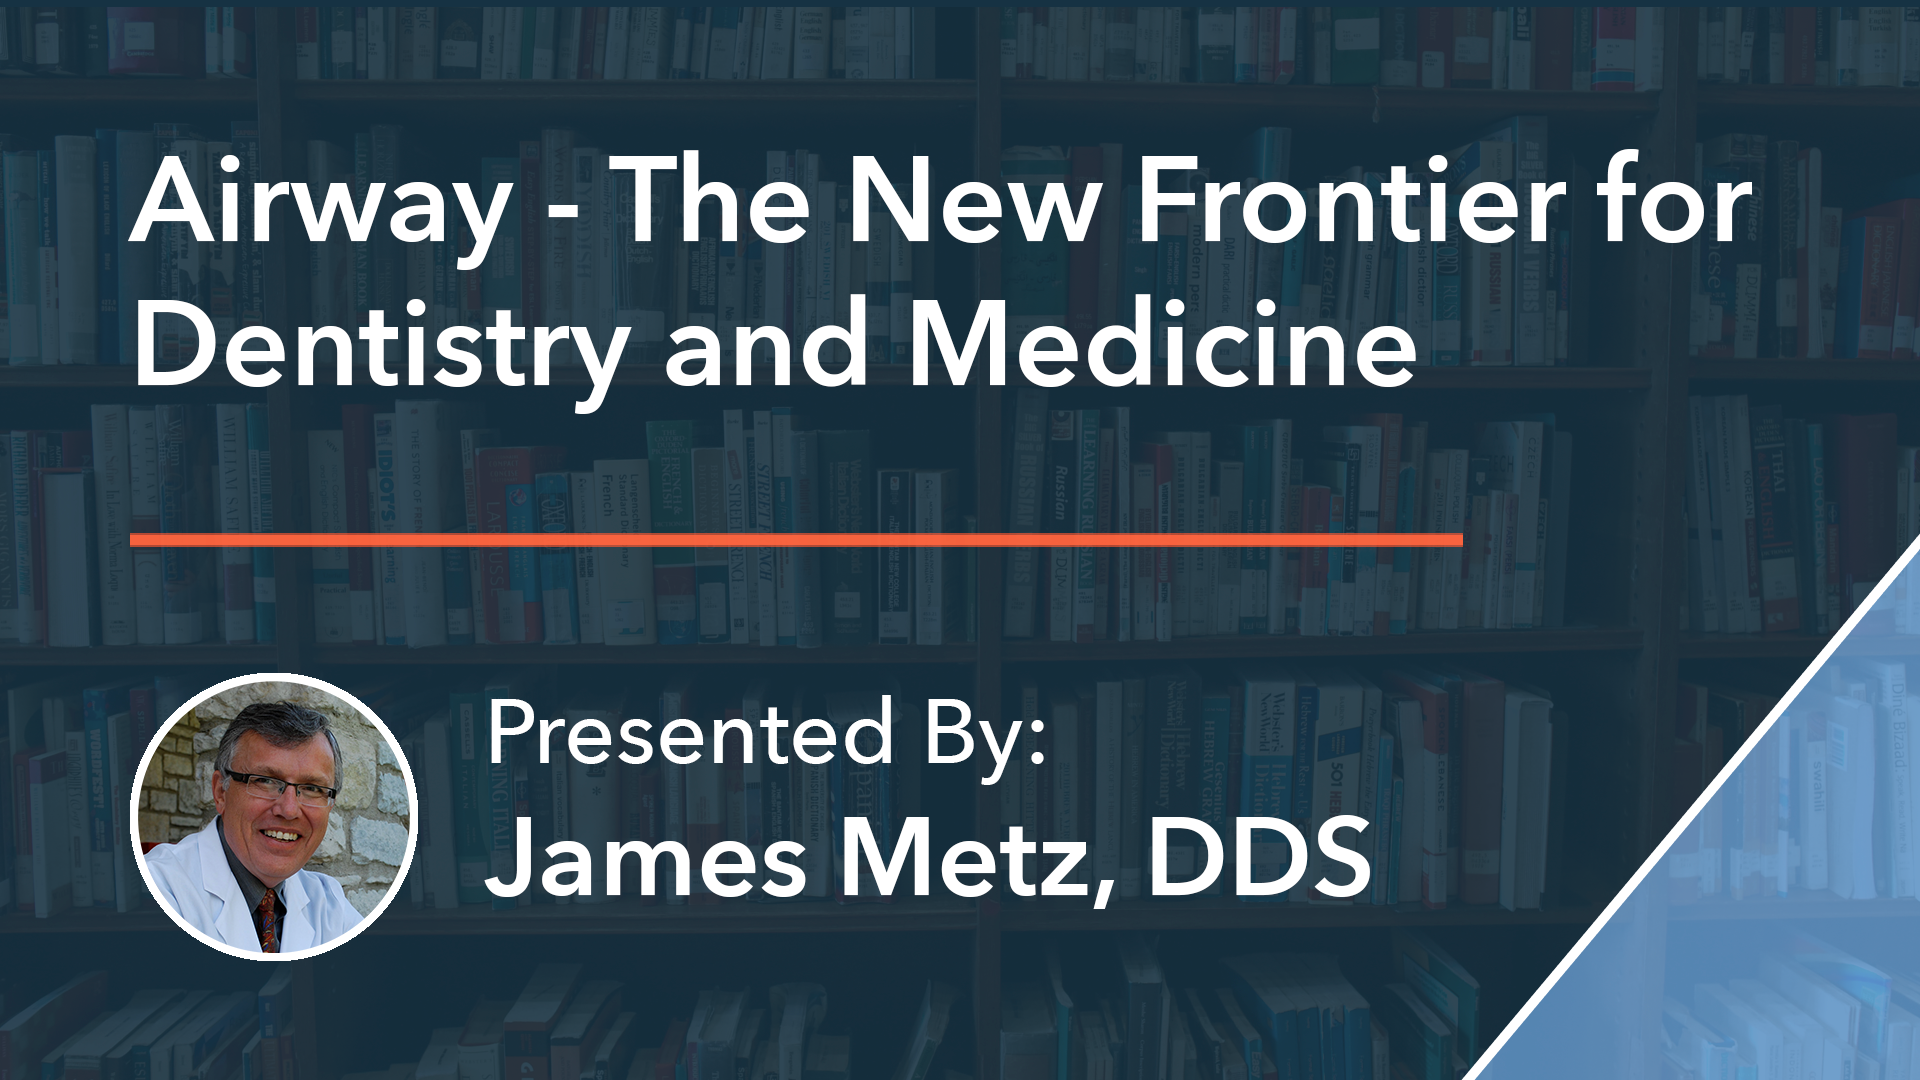 Airway - The New Frontier for Dentistry and Medicine Dr James Metz